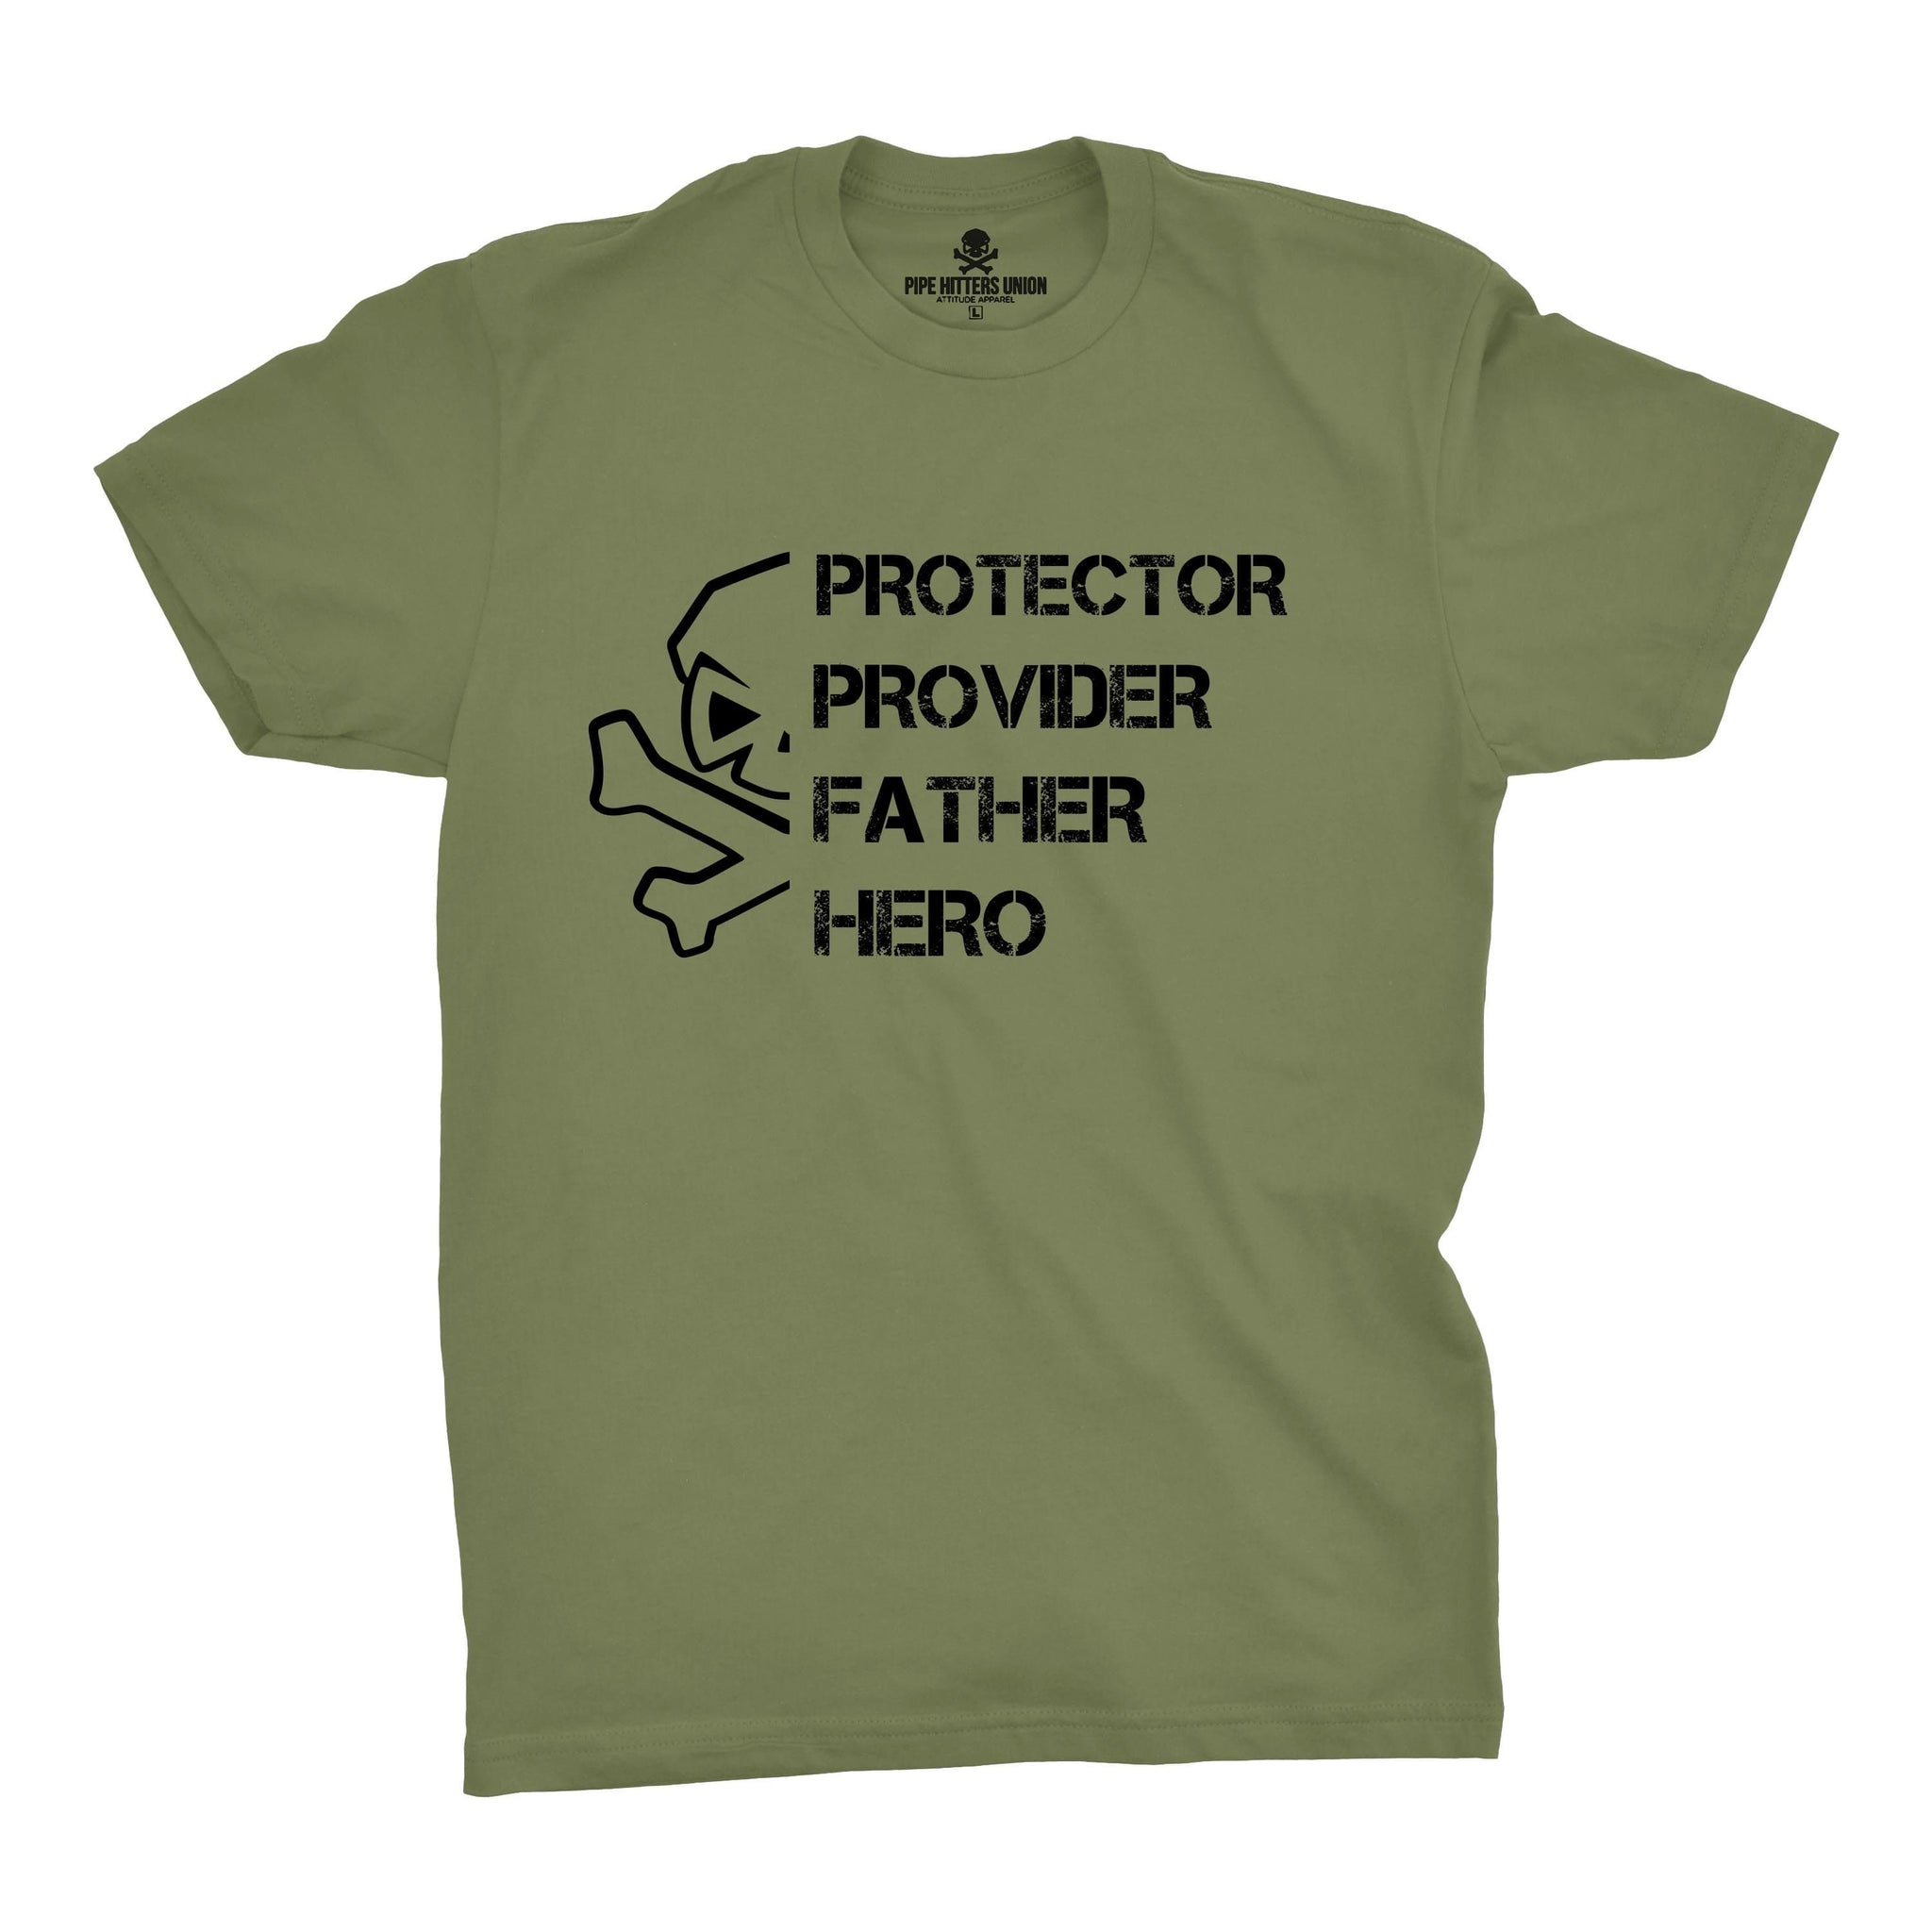 PPFH Skull (Provider) - Military Green - T-Shirts - Pipe Hitters Union